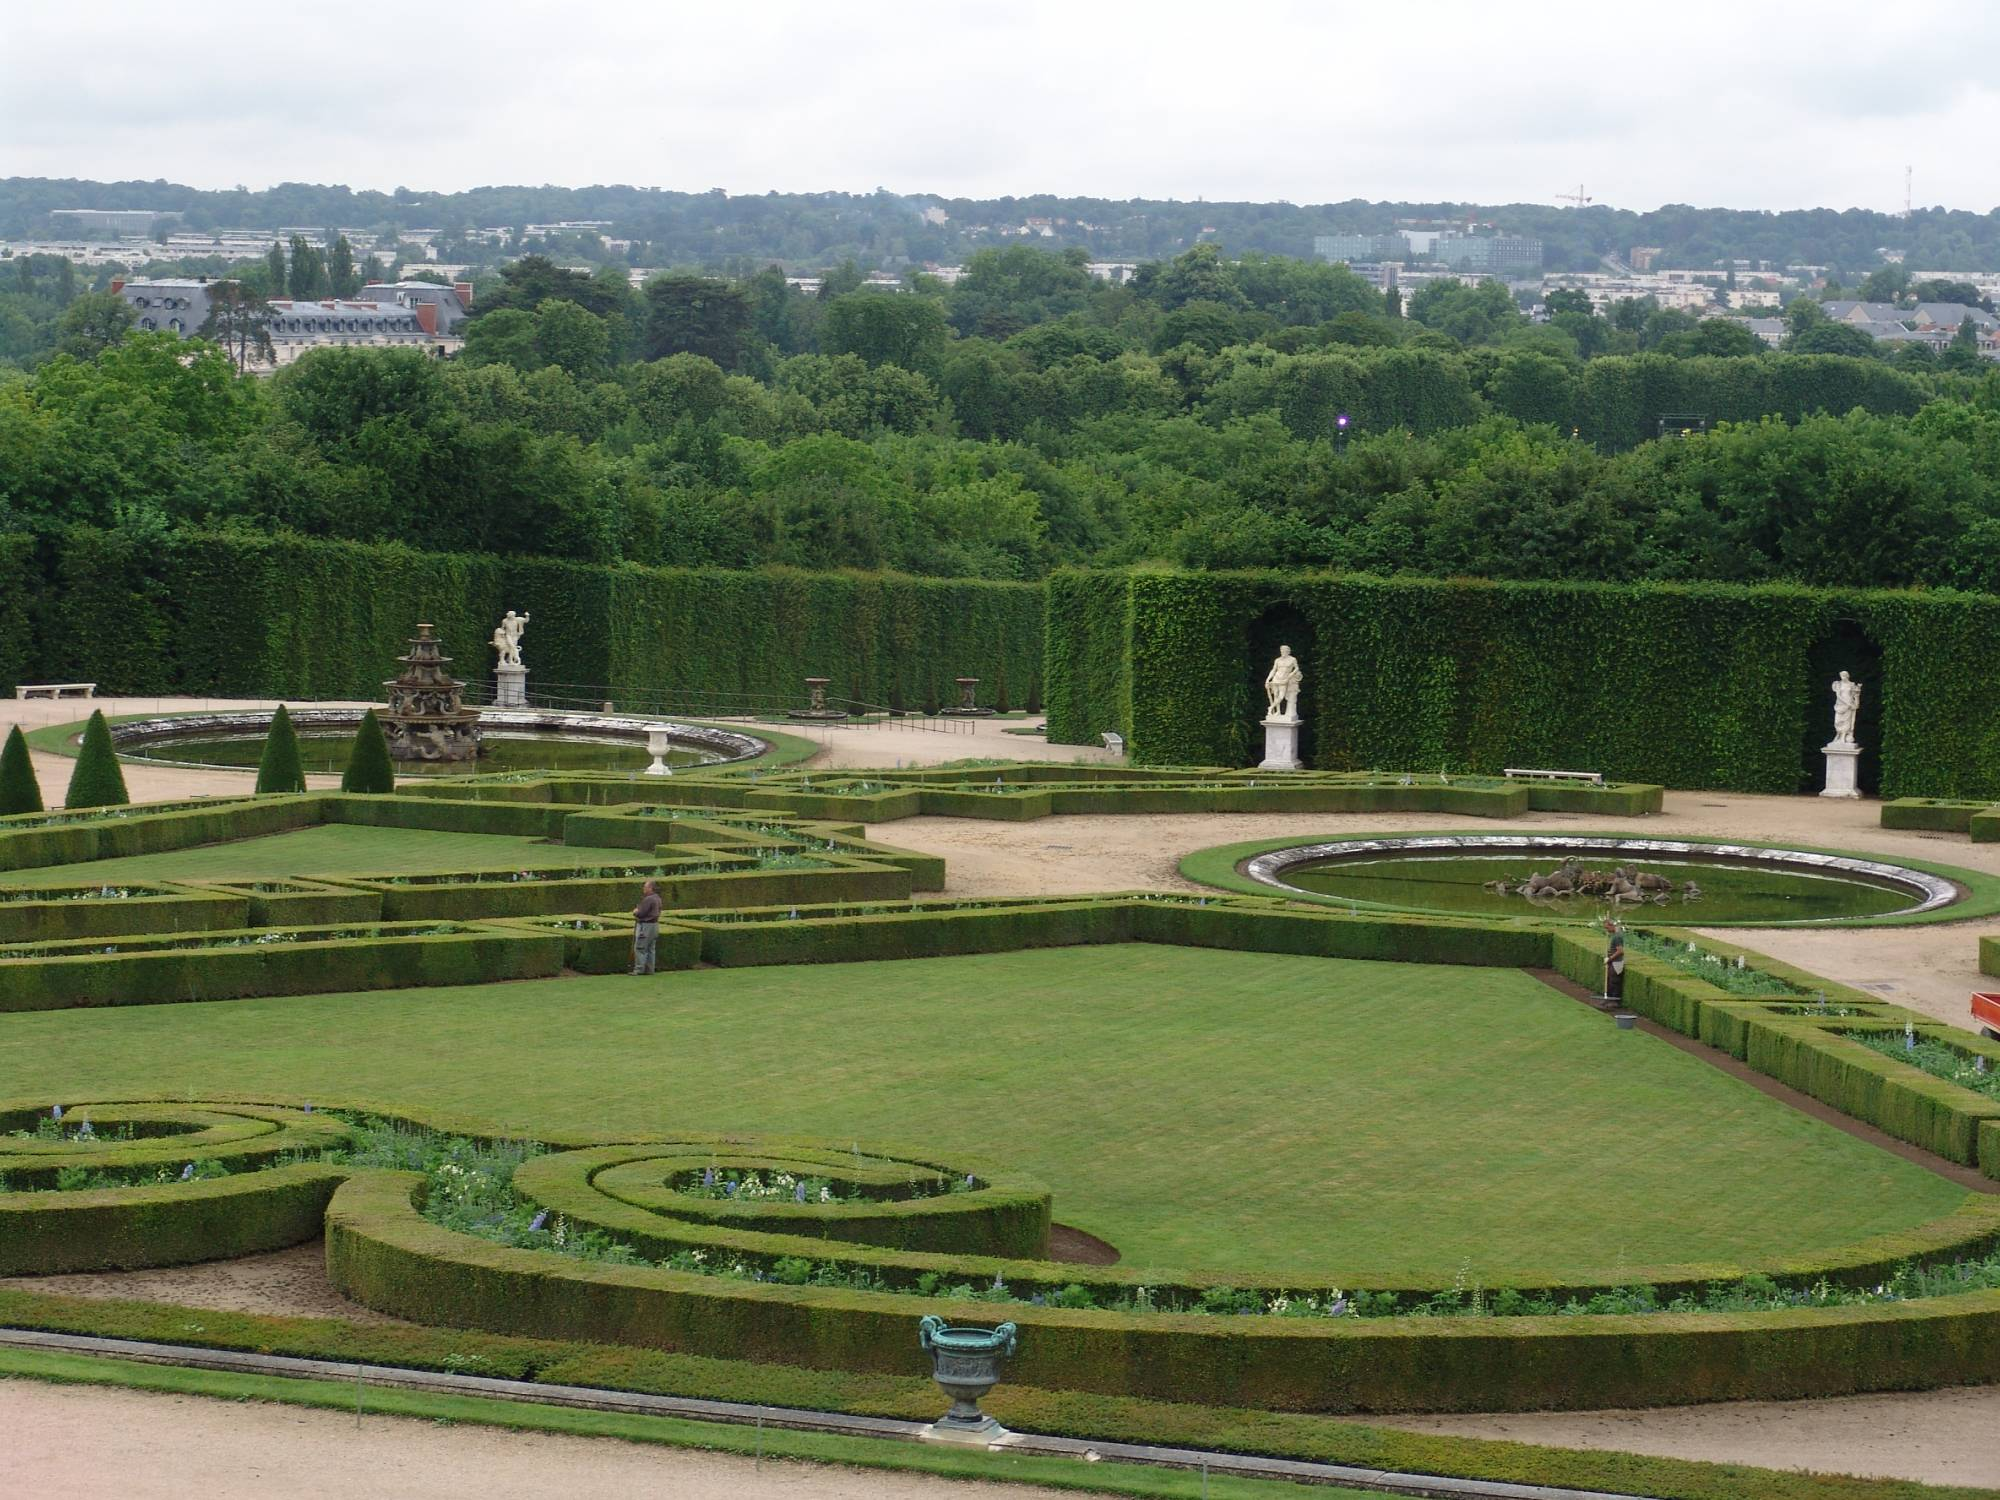 Explore the gardens of Versailles | PassPorter.com